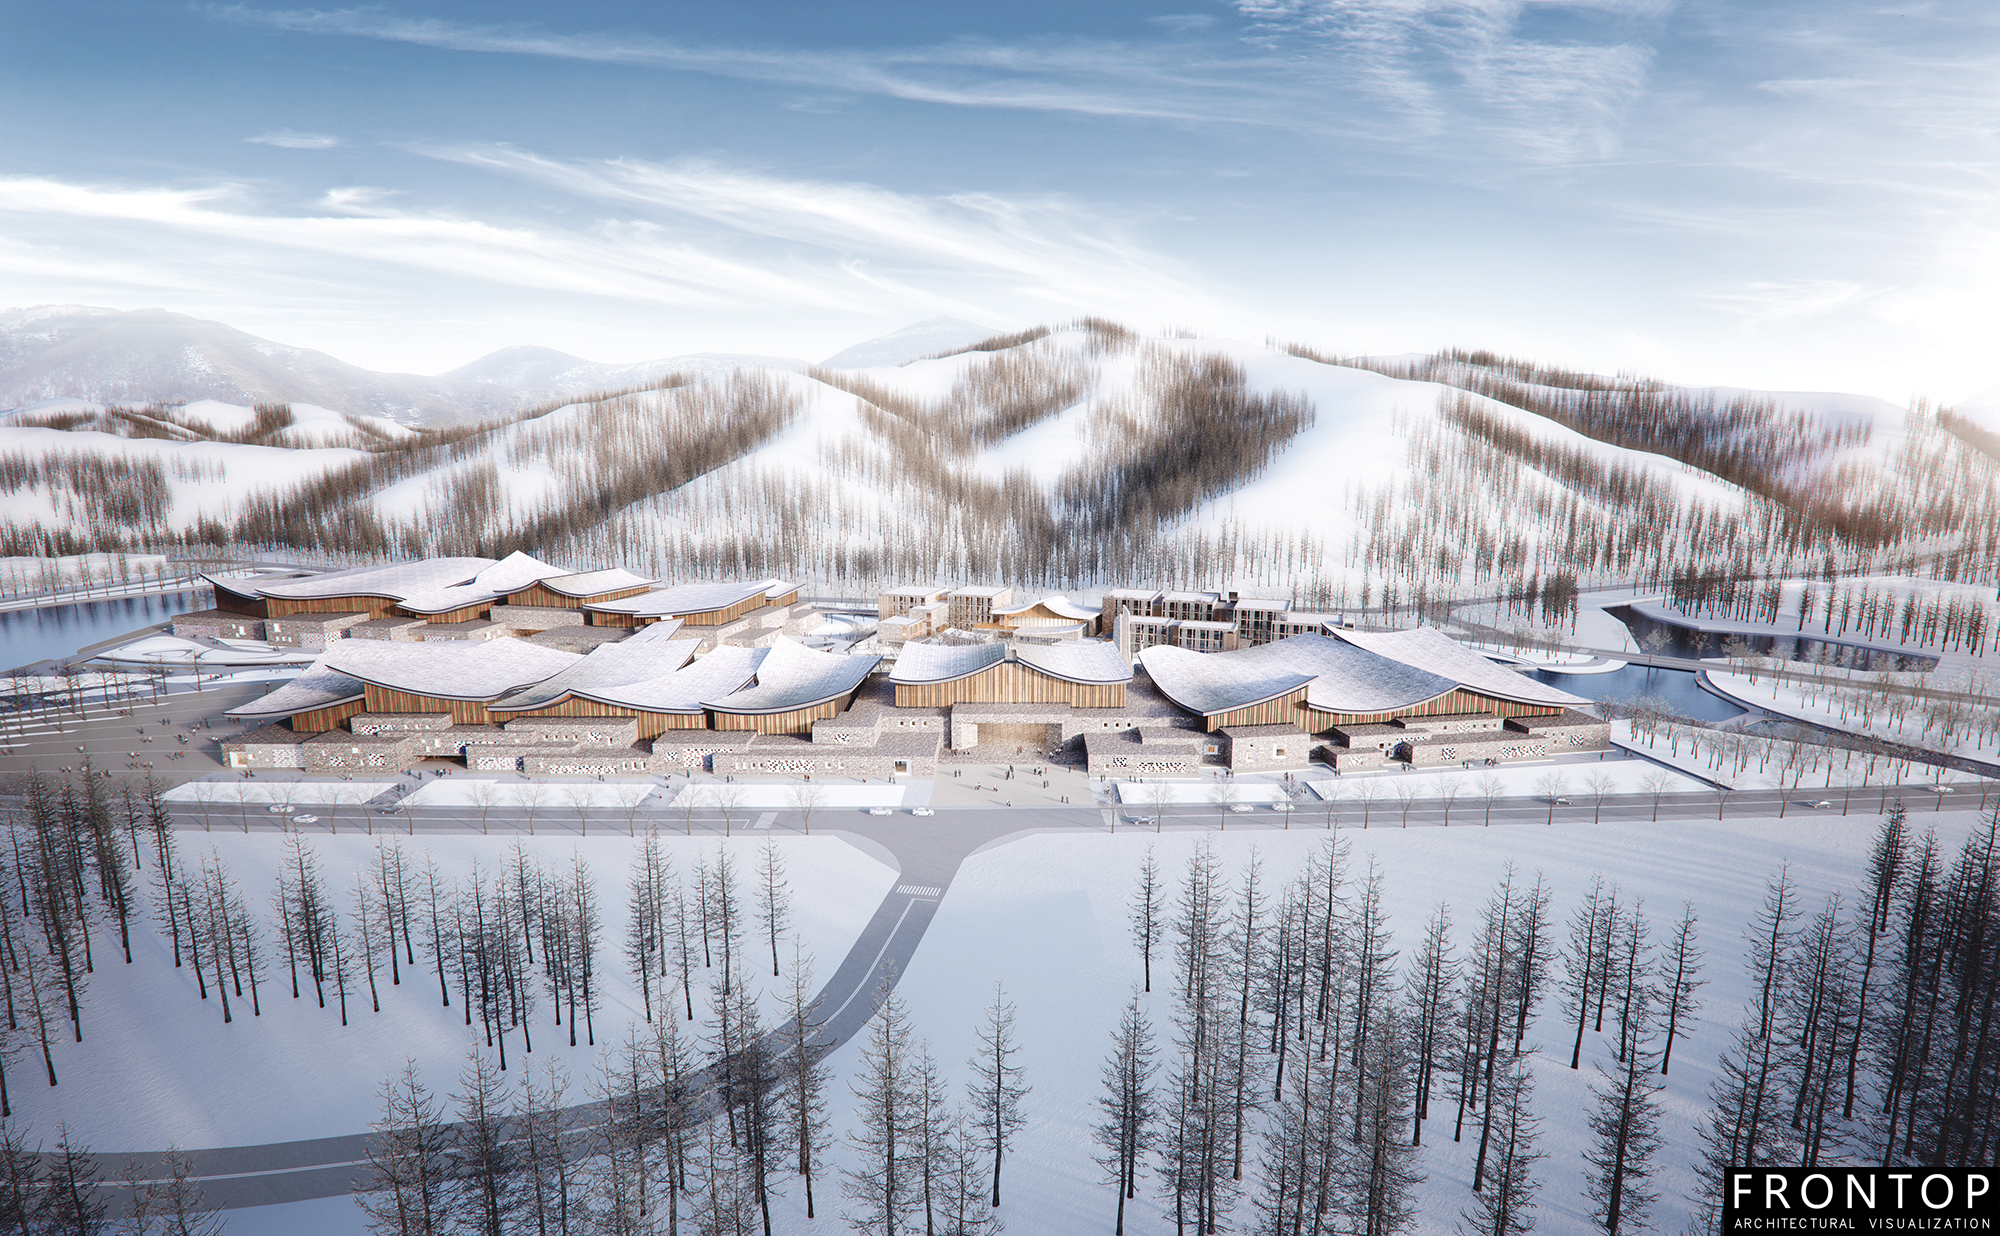 High Quality 3d Max Architecture Models - Winter Olympic Exhibition Center – Frontop Featured Image